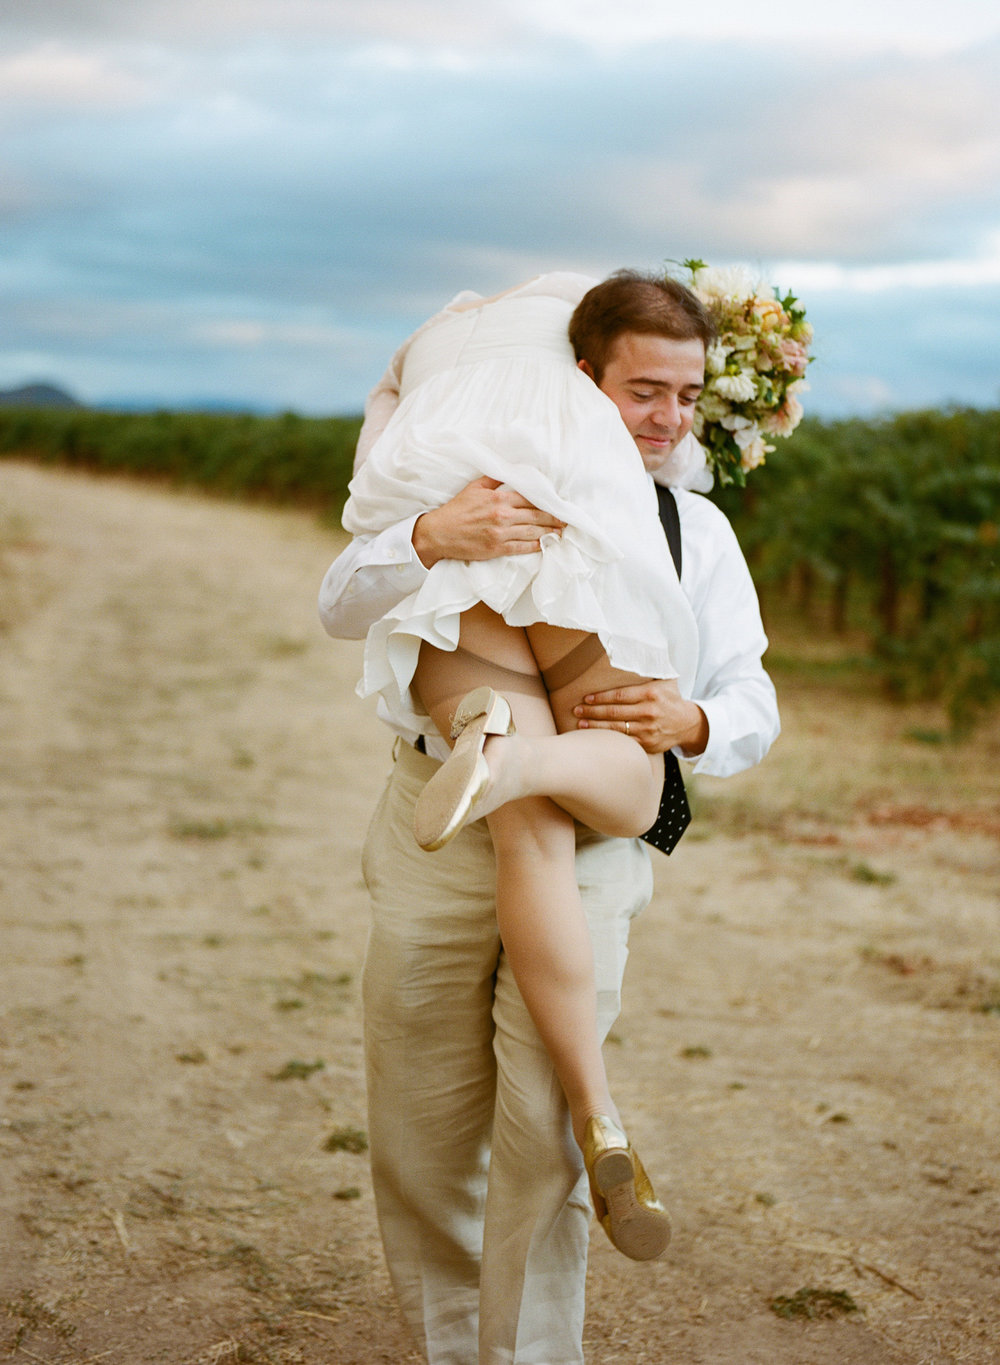 36-4-groom-carries-bride-shoulder.jpg